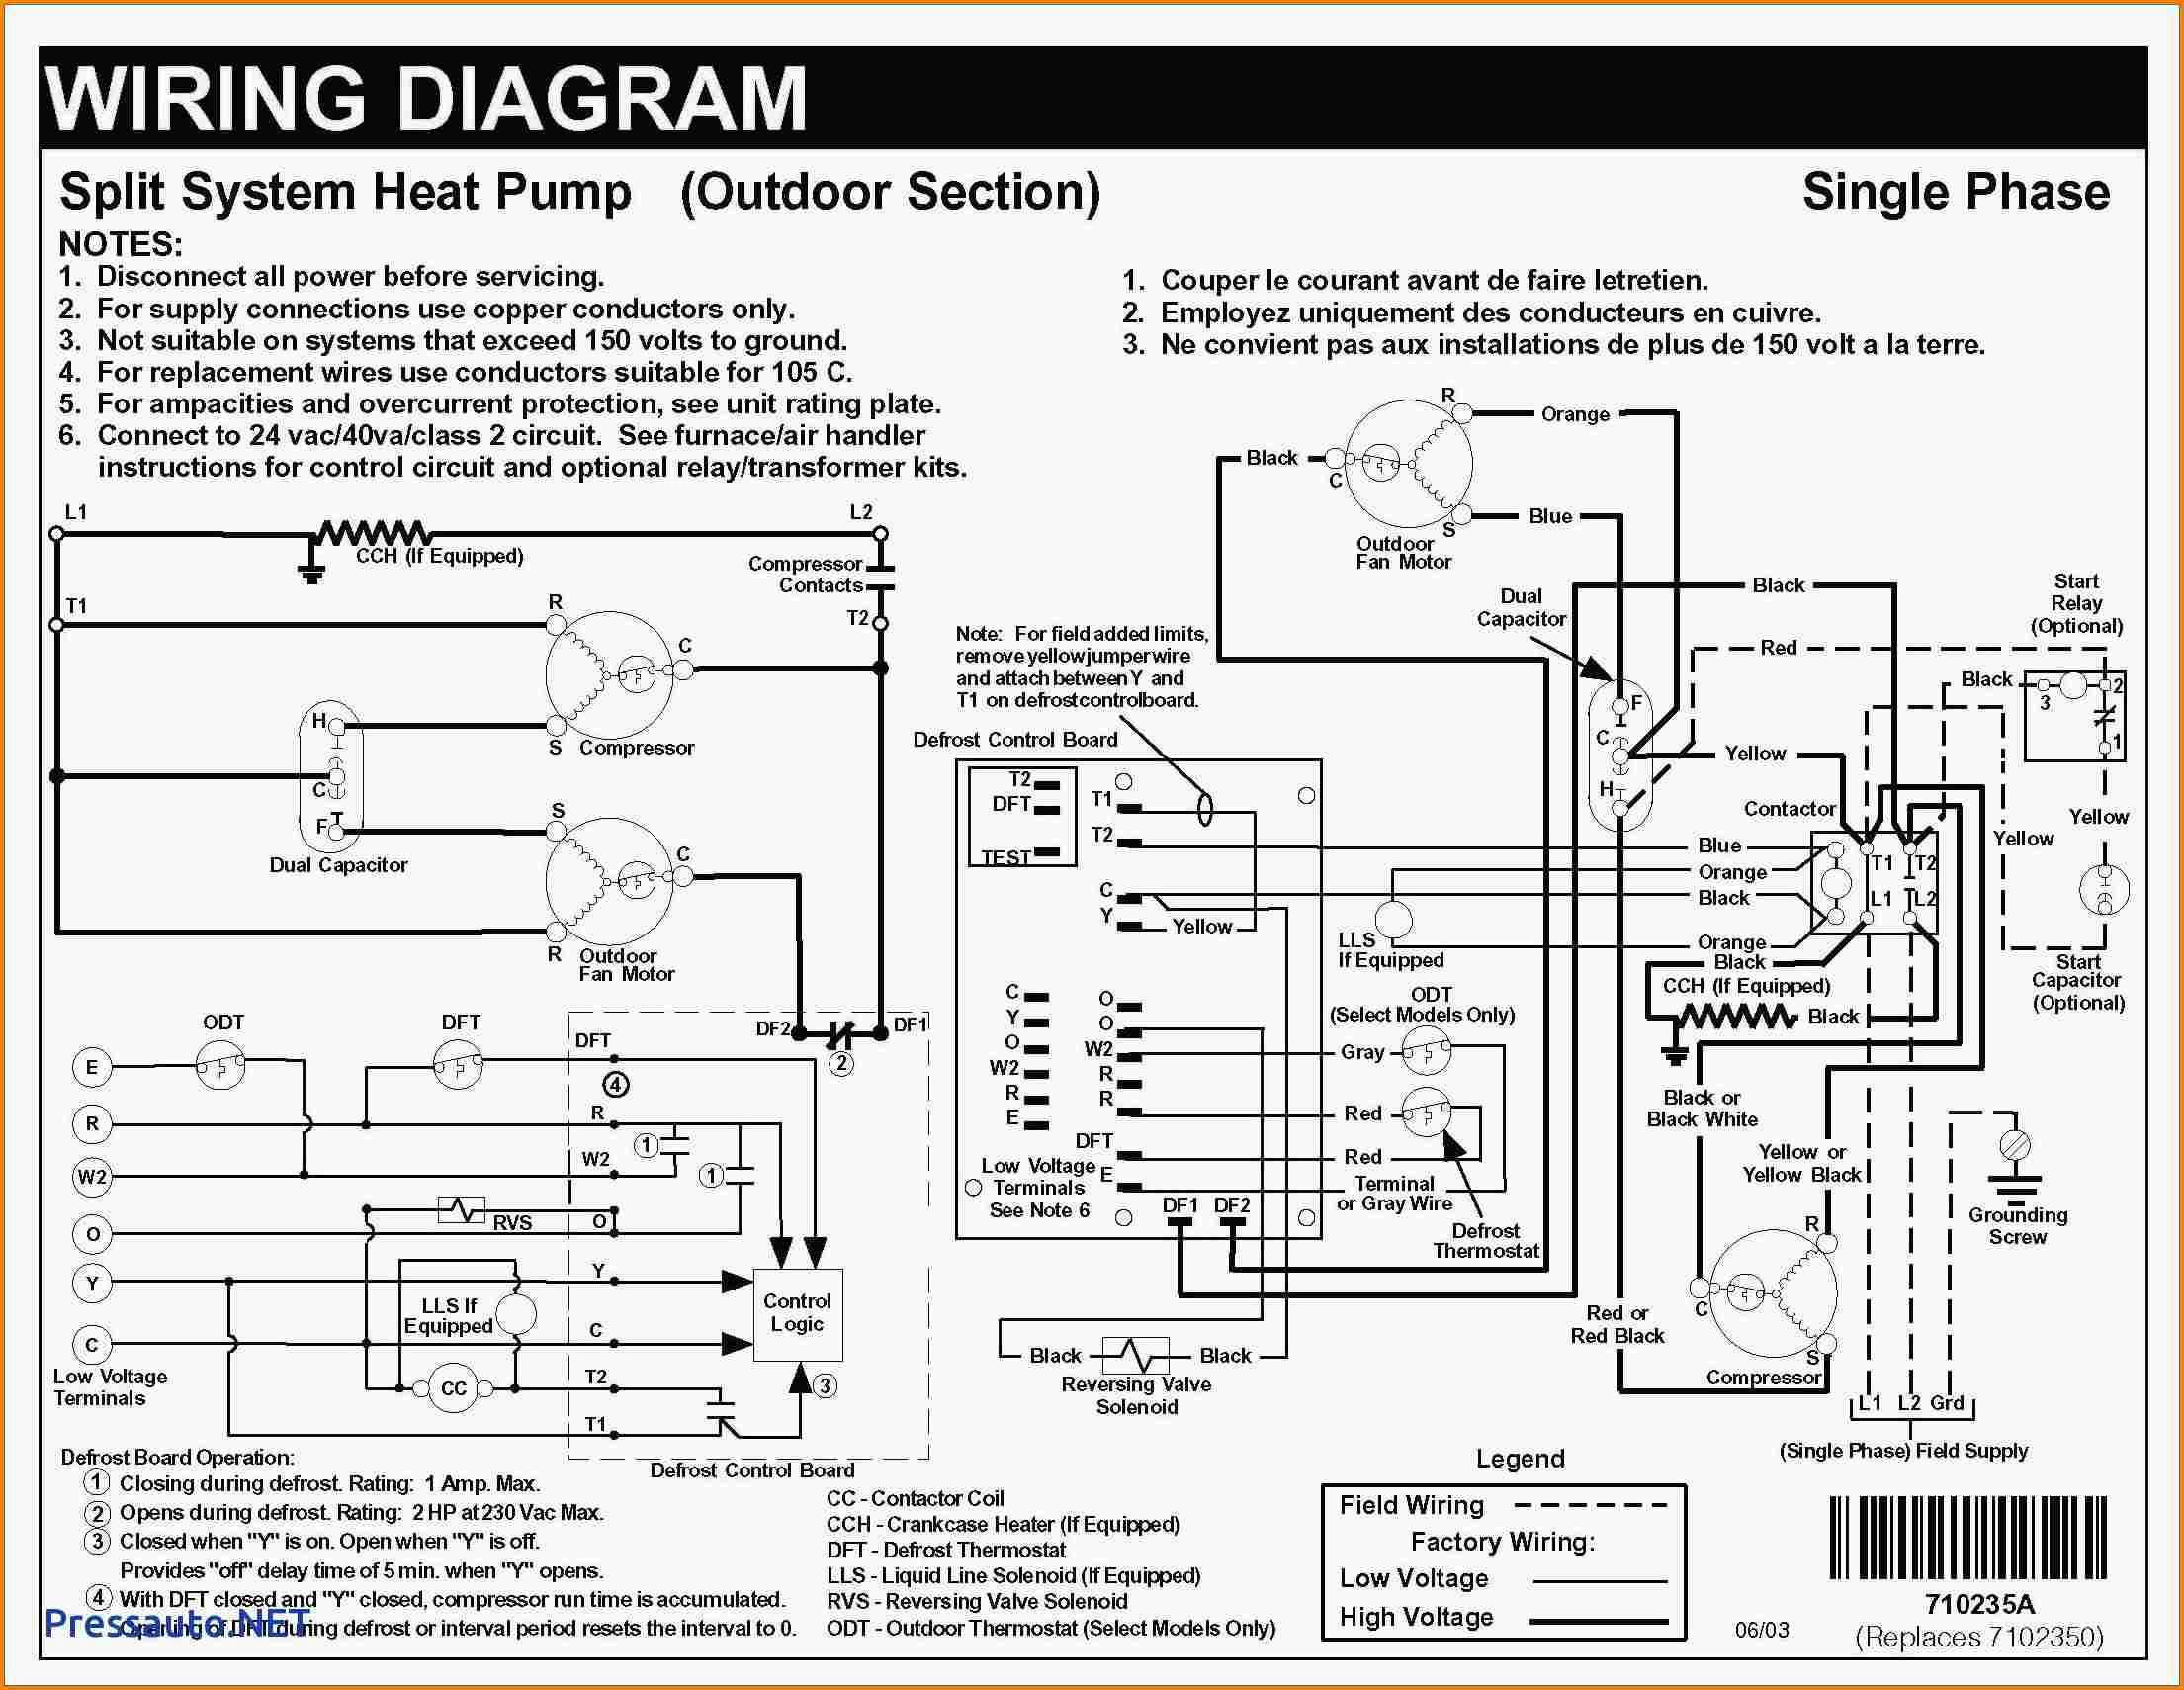 Goodman Electric Furnace Wiring Diagram 1200 - 16.12.danishfashion on goodman capacitor wiring diagram, goodman air conditioner schematic diagram, goodman manuals wiring diagrams, goodman indoor unit wire diagram, goodman air handler wiring diagrams, goodman air handler parts diagram, goodman a c wiring diagram, goodman control board wiring diagram,